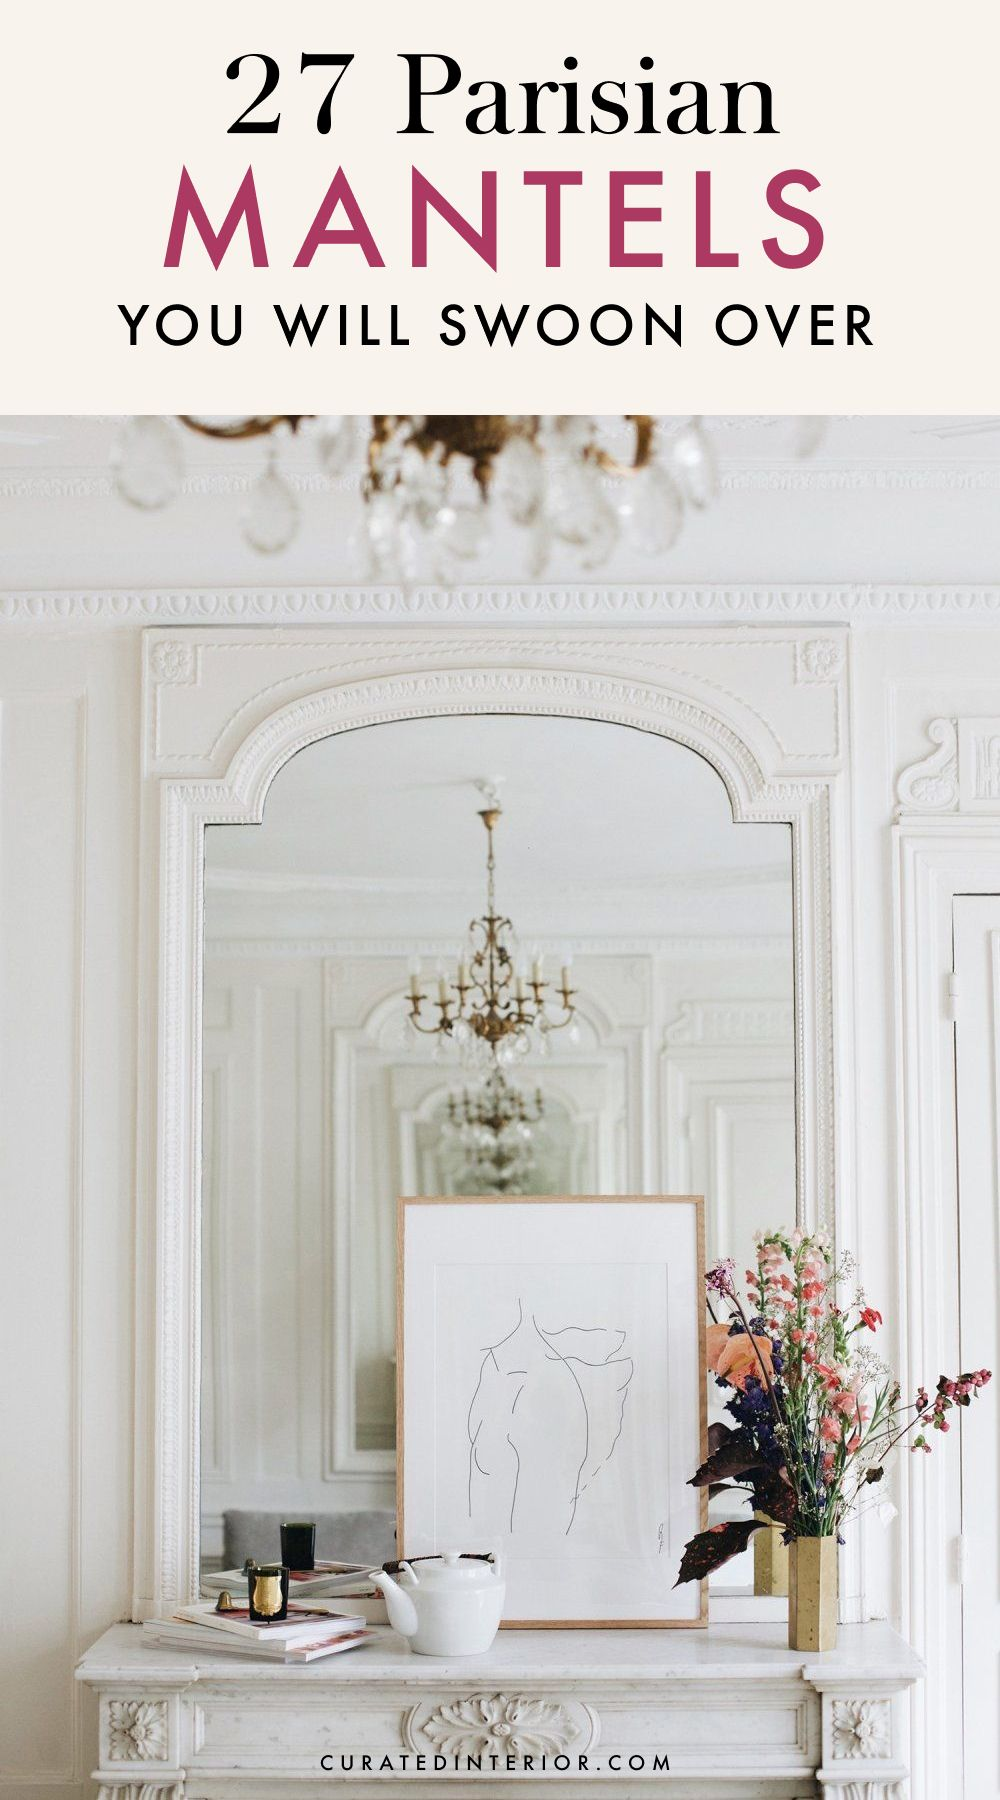 27 Parisian Mantels You Will Swoon Over